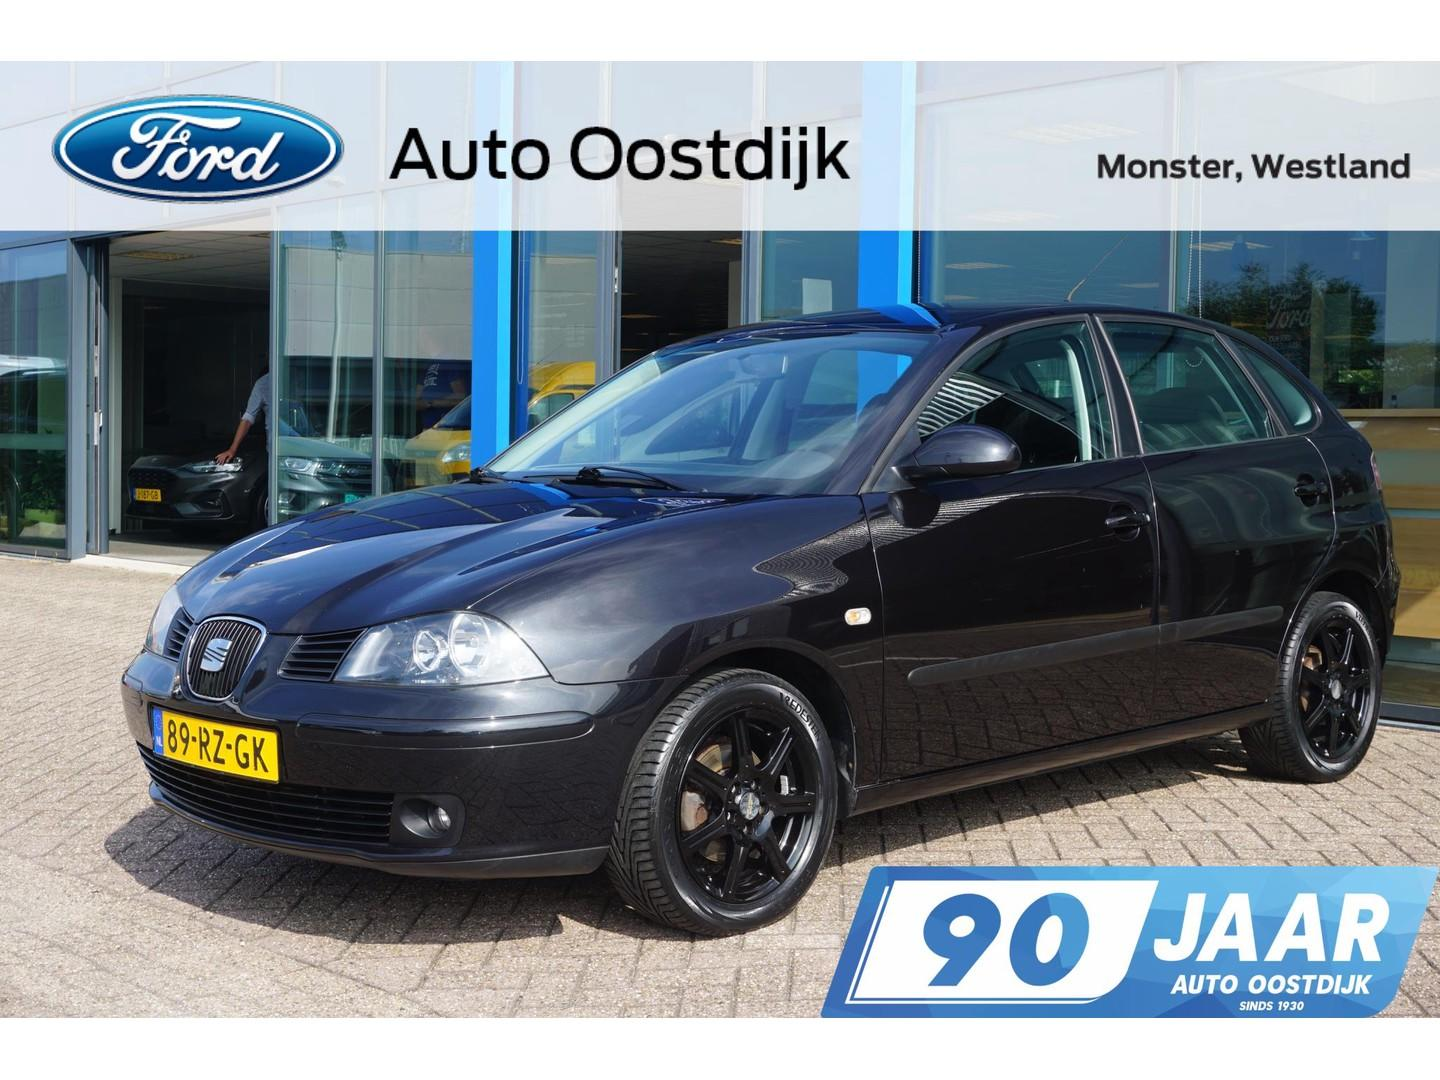 Seat Ibiza 1.4-16v reference 5-deurs airco lm velg